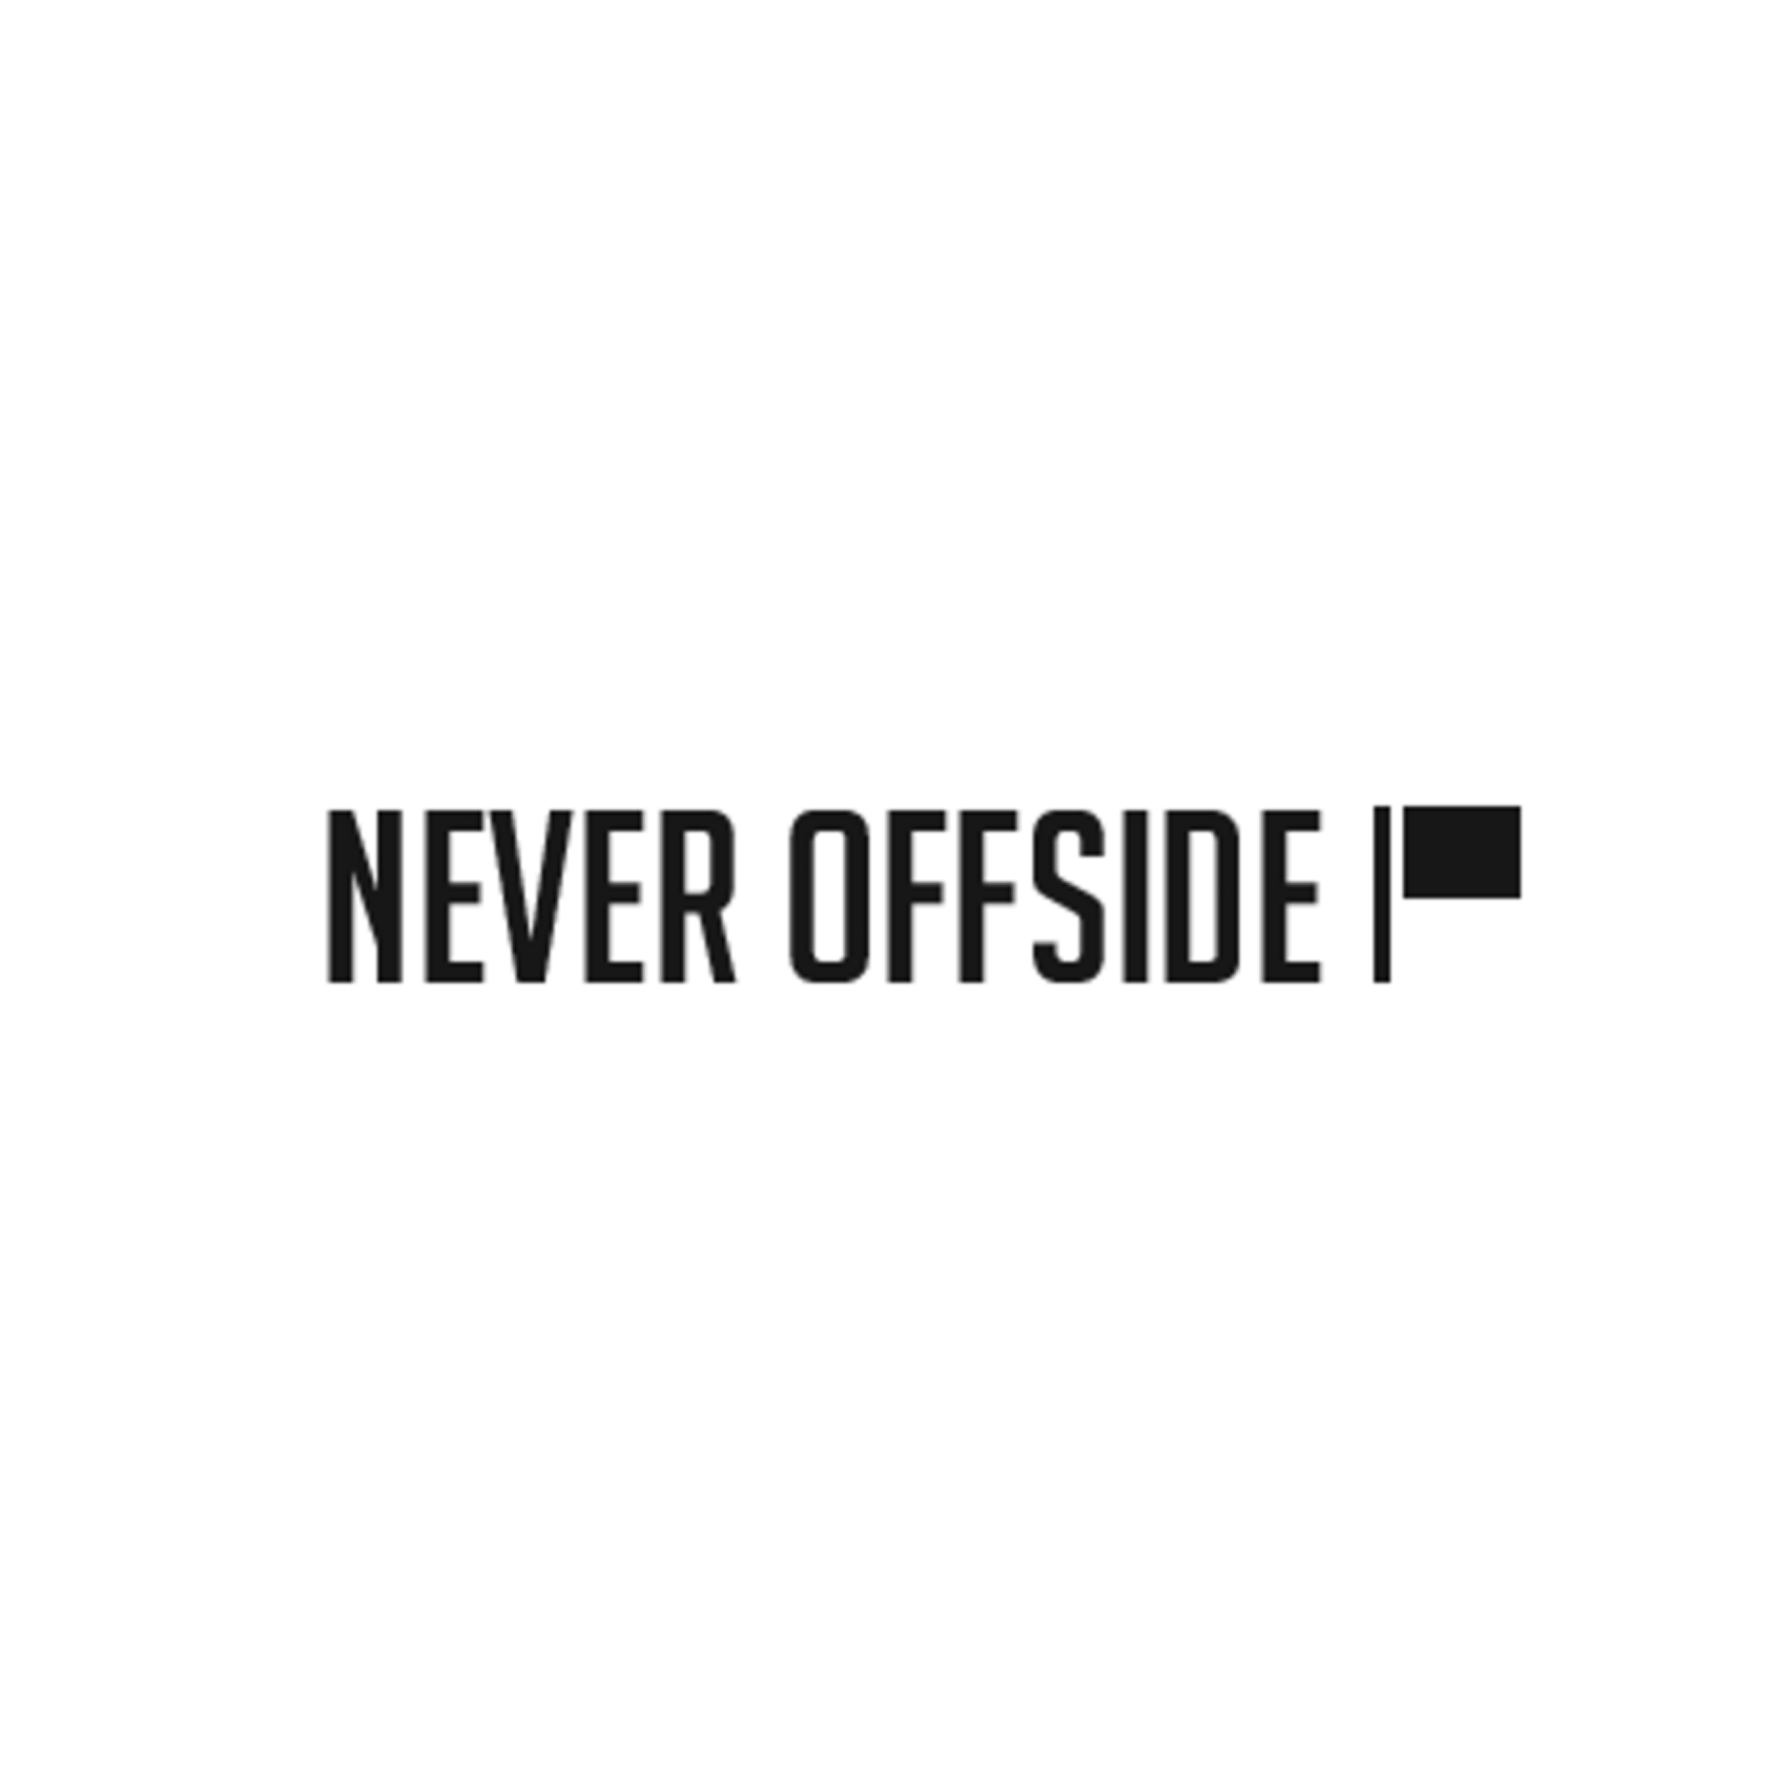 Never Offside    M y second piece of work for Never Offside